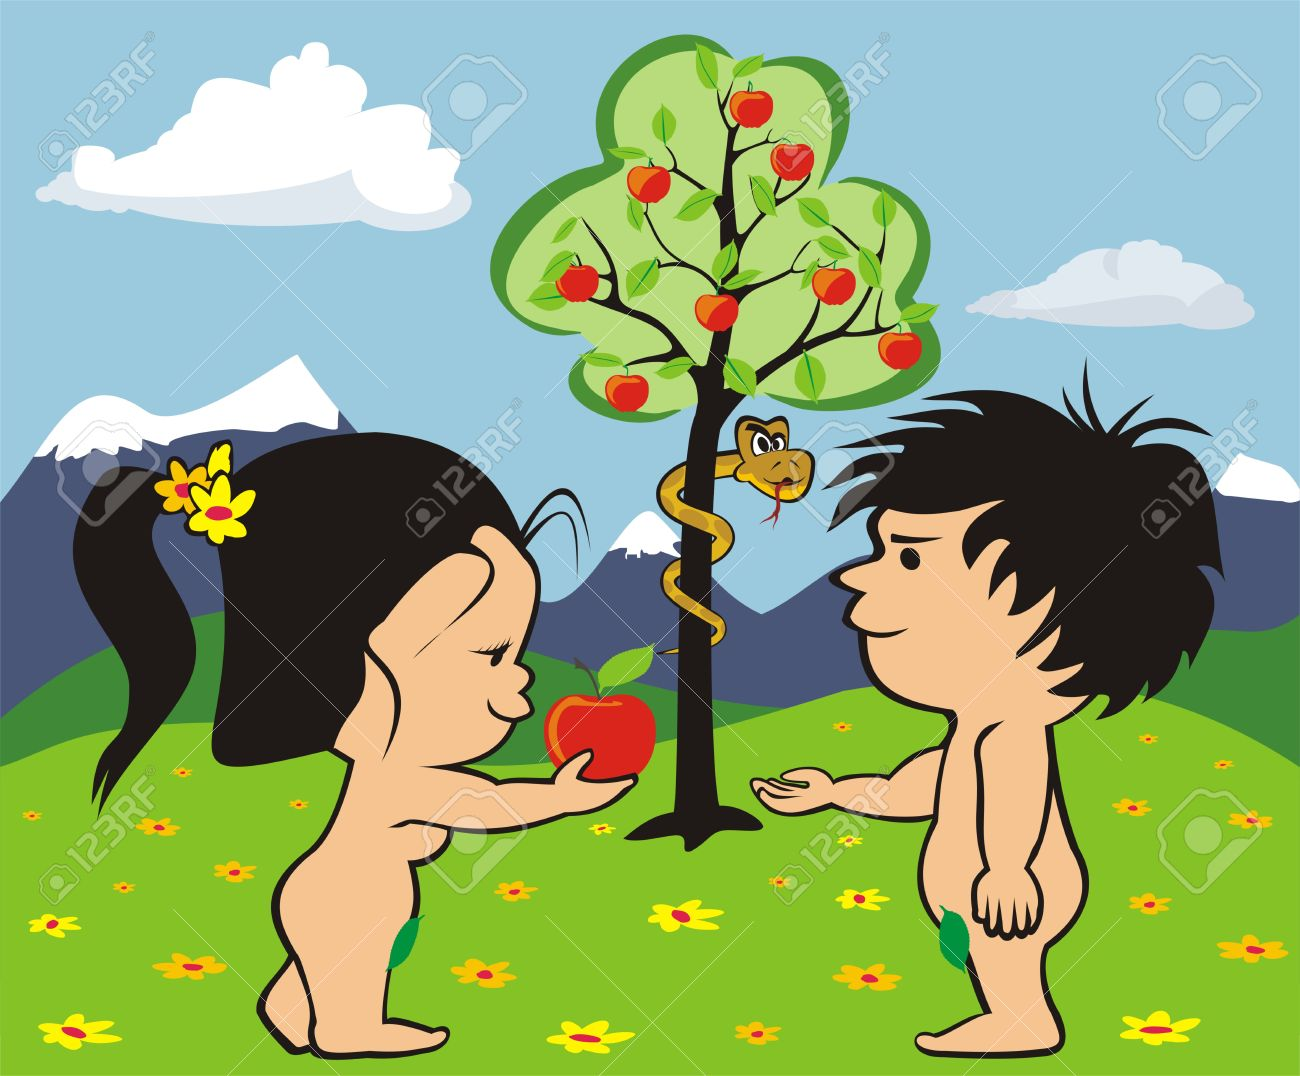 Adam und eva clipart graphic download Adam and eve apple clipart - ClipartFest graphic download